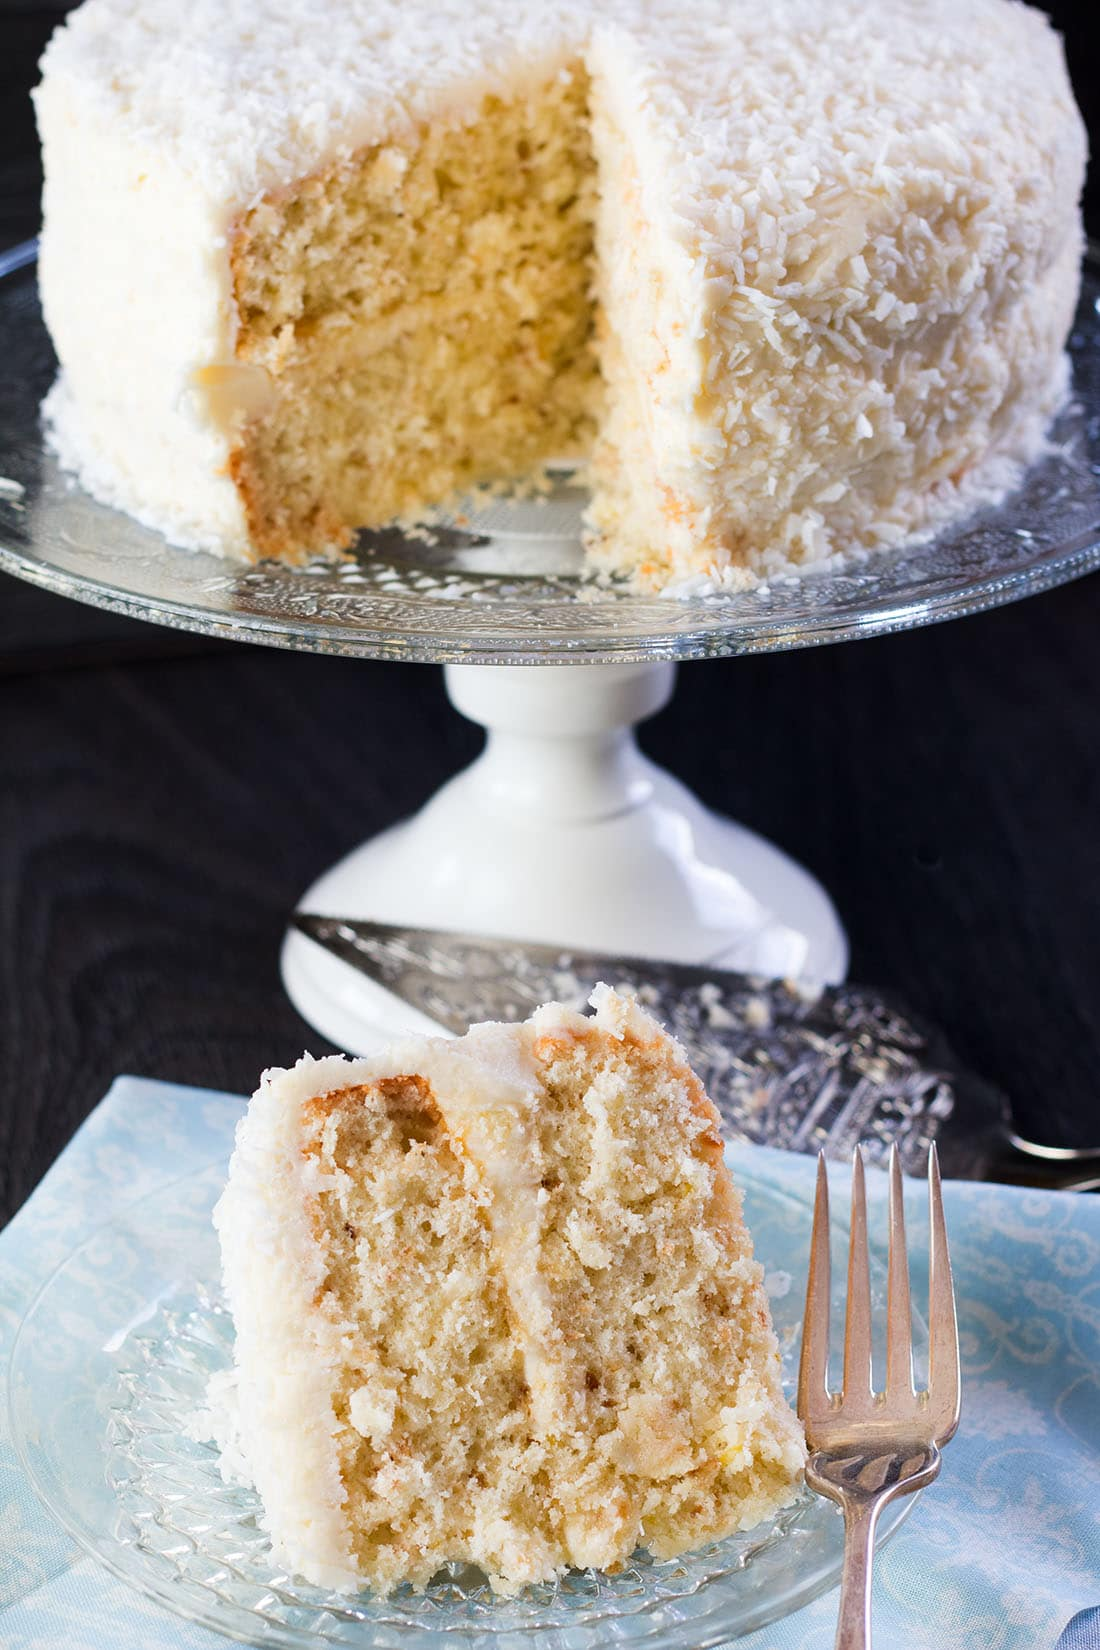 Get a triple hit of coconut with this beautiful Coconut Lovers Dream Cake recipe from Erren's Kitchen. This heavenly moist, coconut covered cake is speckled with toasted coconut and iced with a coconut buttercream that's simply divine.